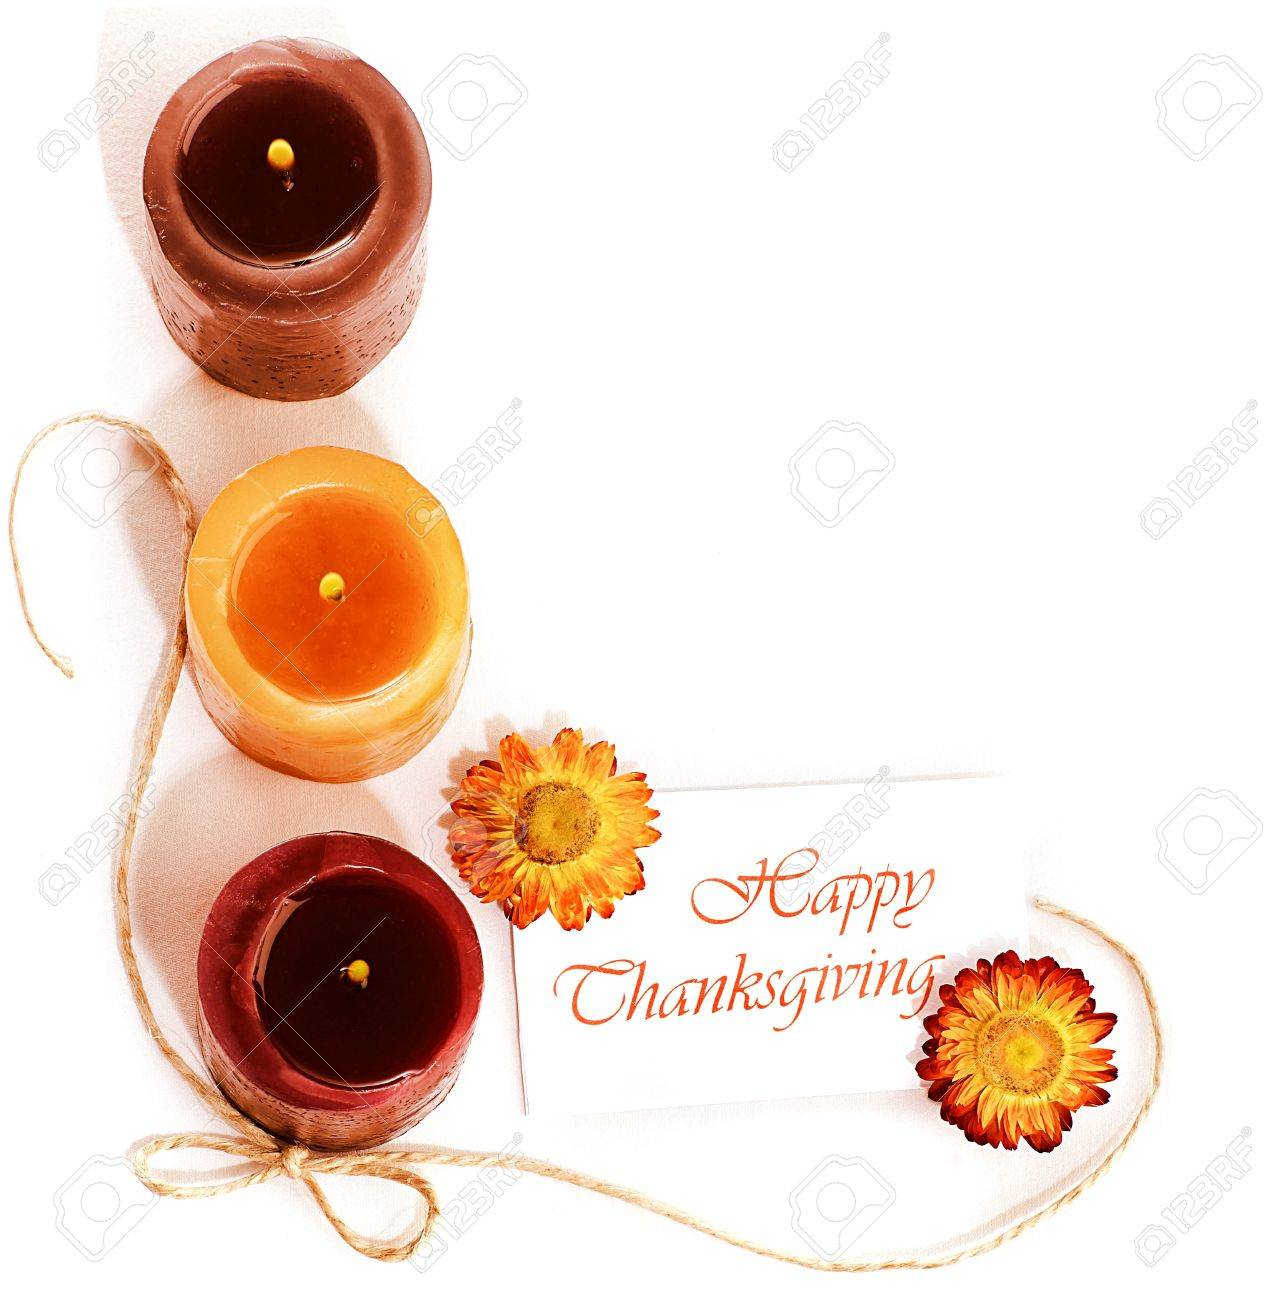 Thanksgiving holiday, border still life decoration with candles isolated over white background, greeting card with text space, harvest concept Stock Photo - 10942191